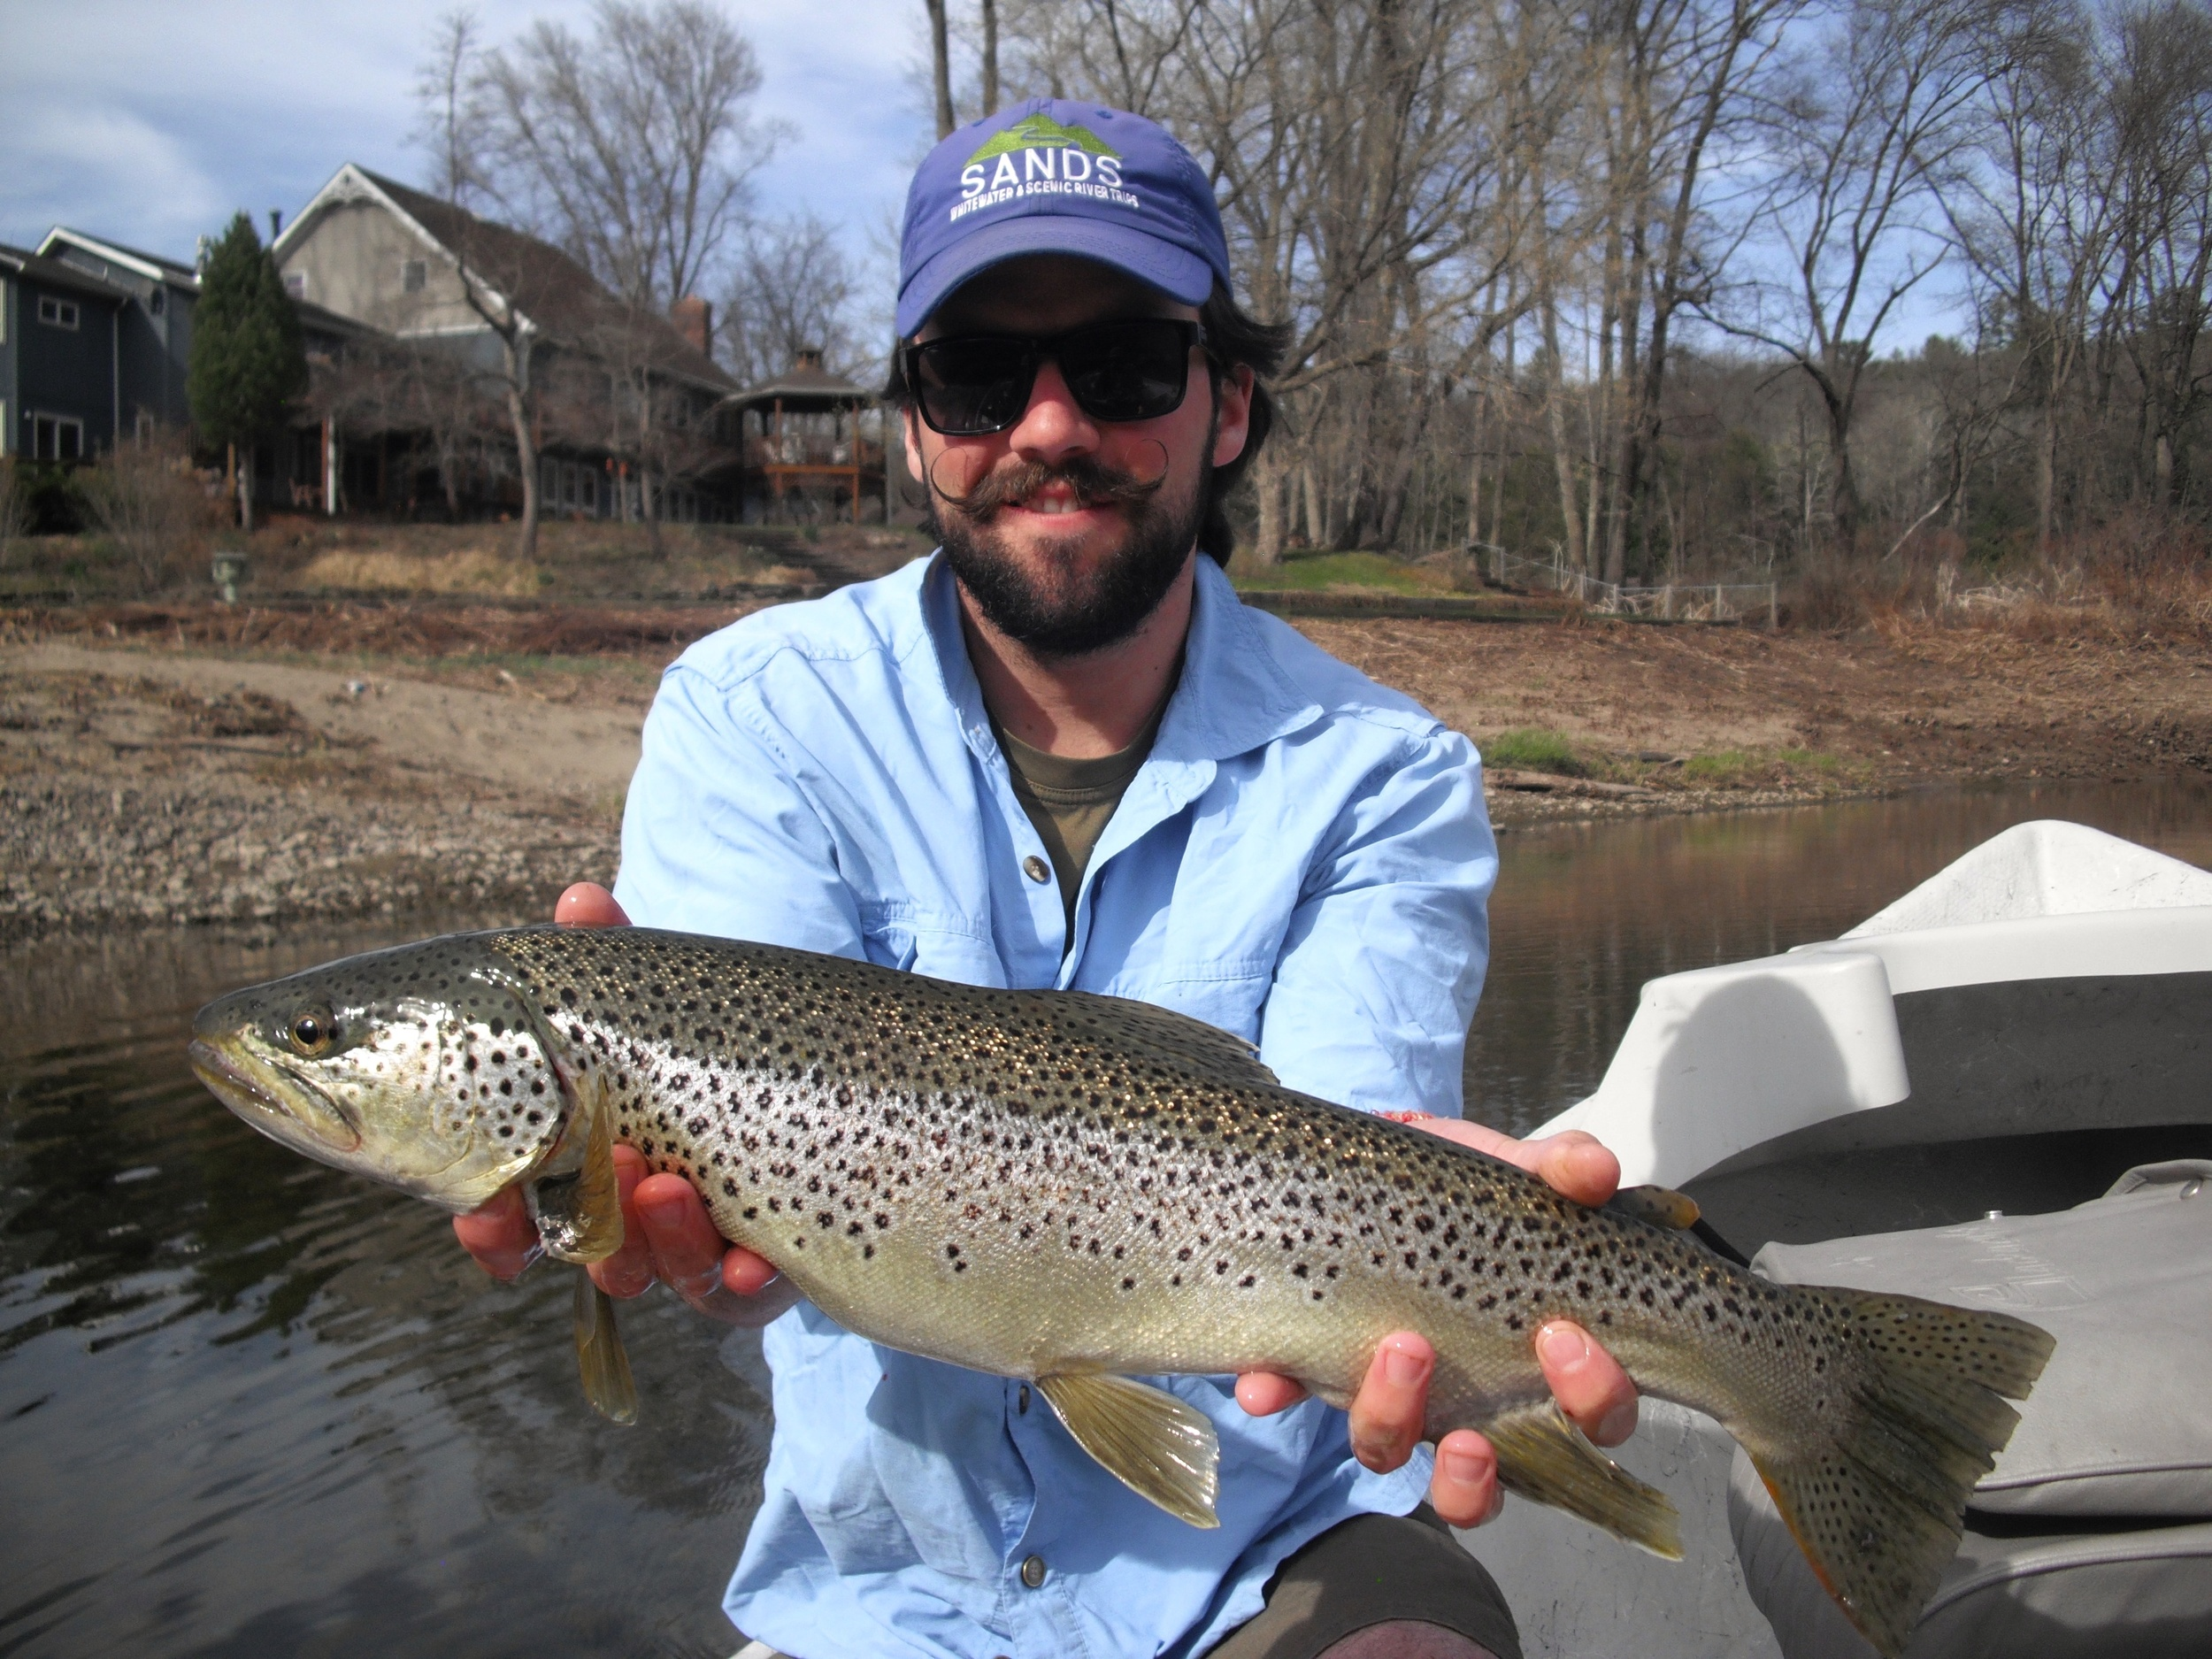 "24"" Brown trout taken on a fly for Ben S."